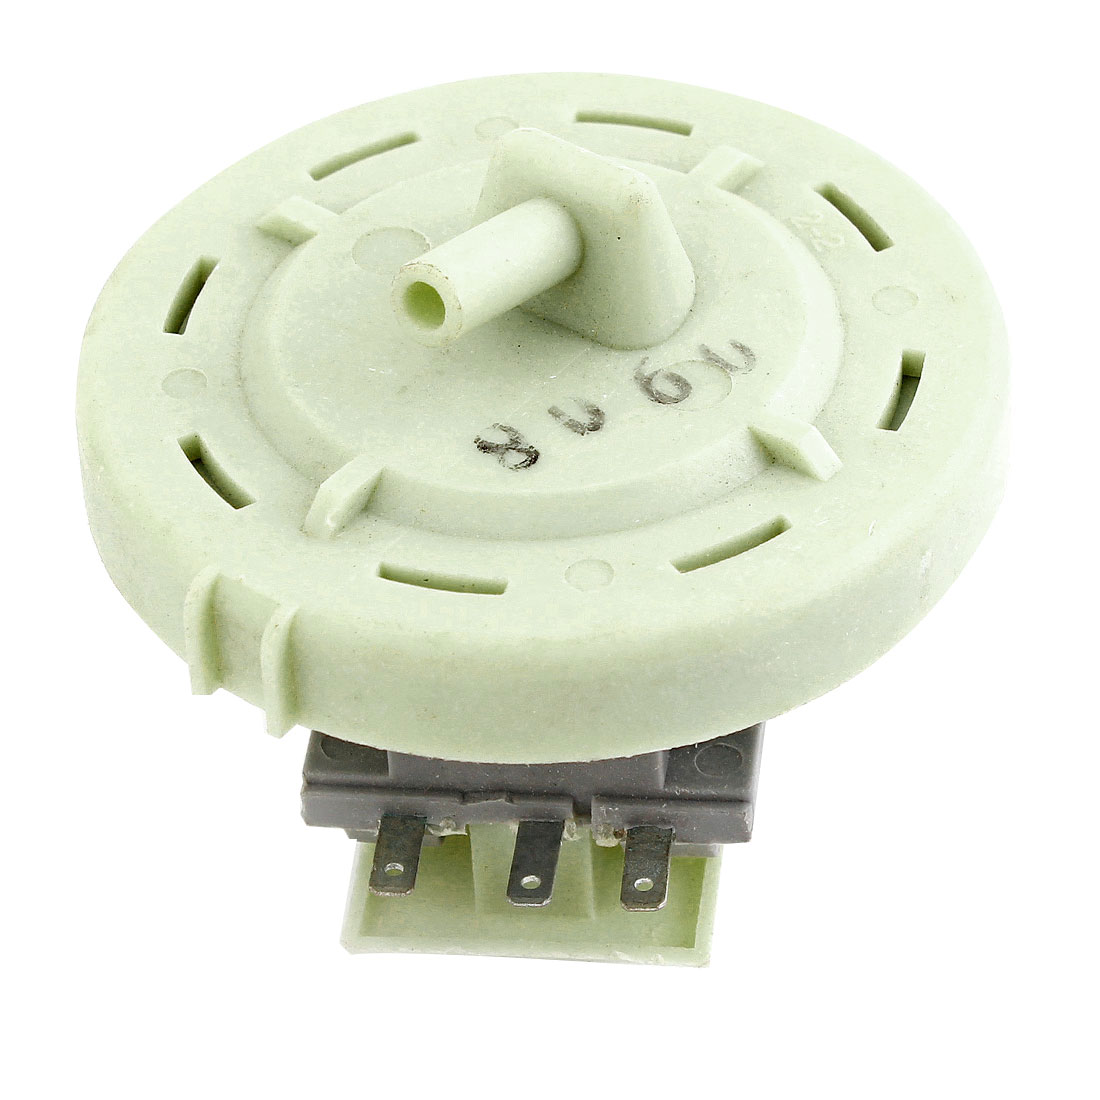 Water Level Sensor Switch for Little Swan Washing Machine